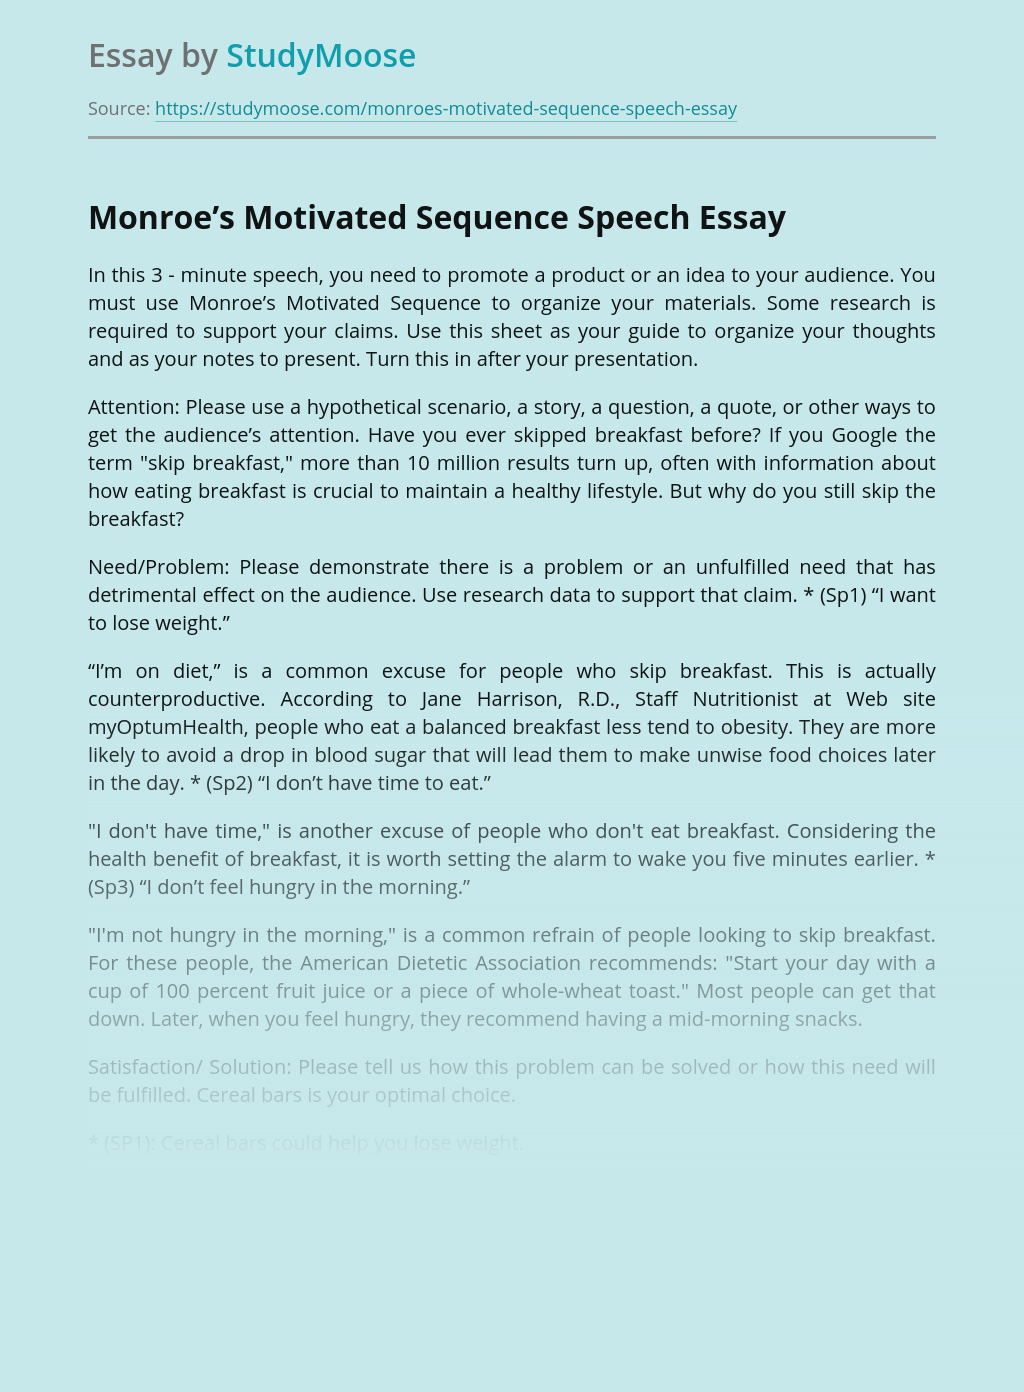 Monroe's Motivated Sequence Speech